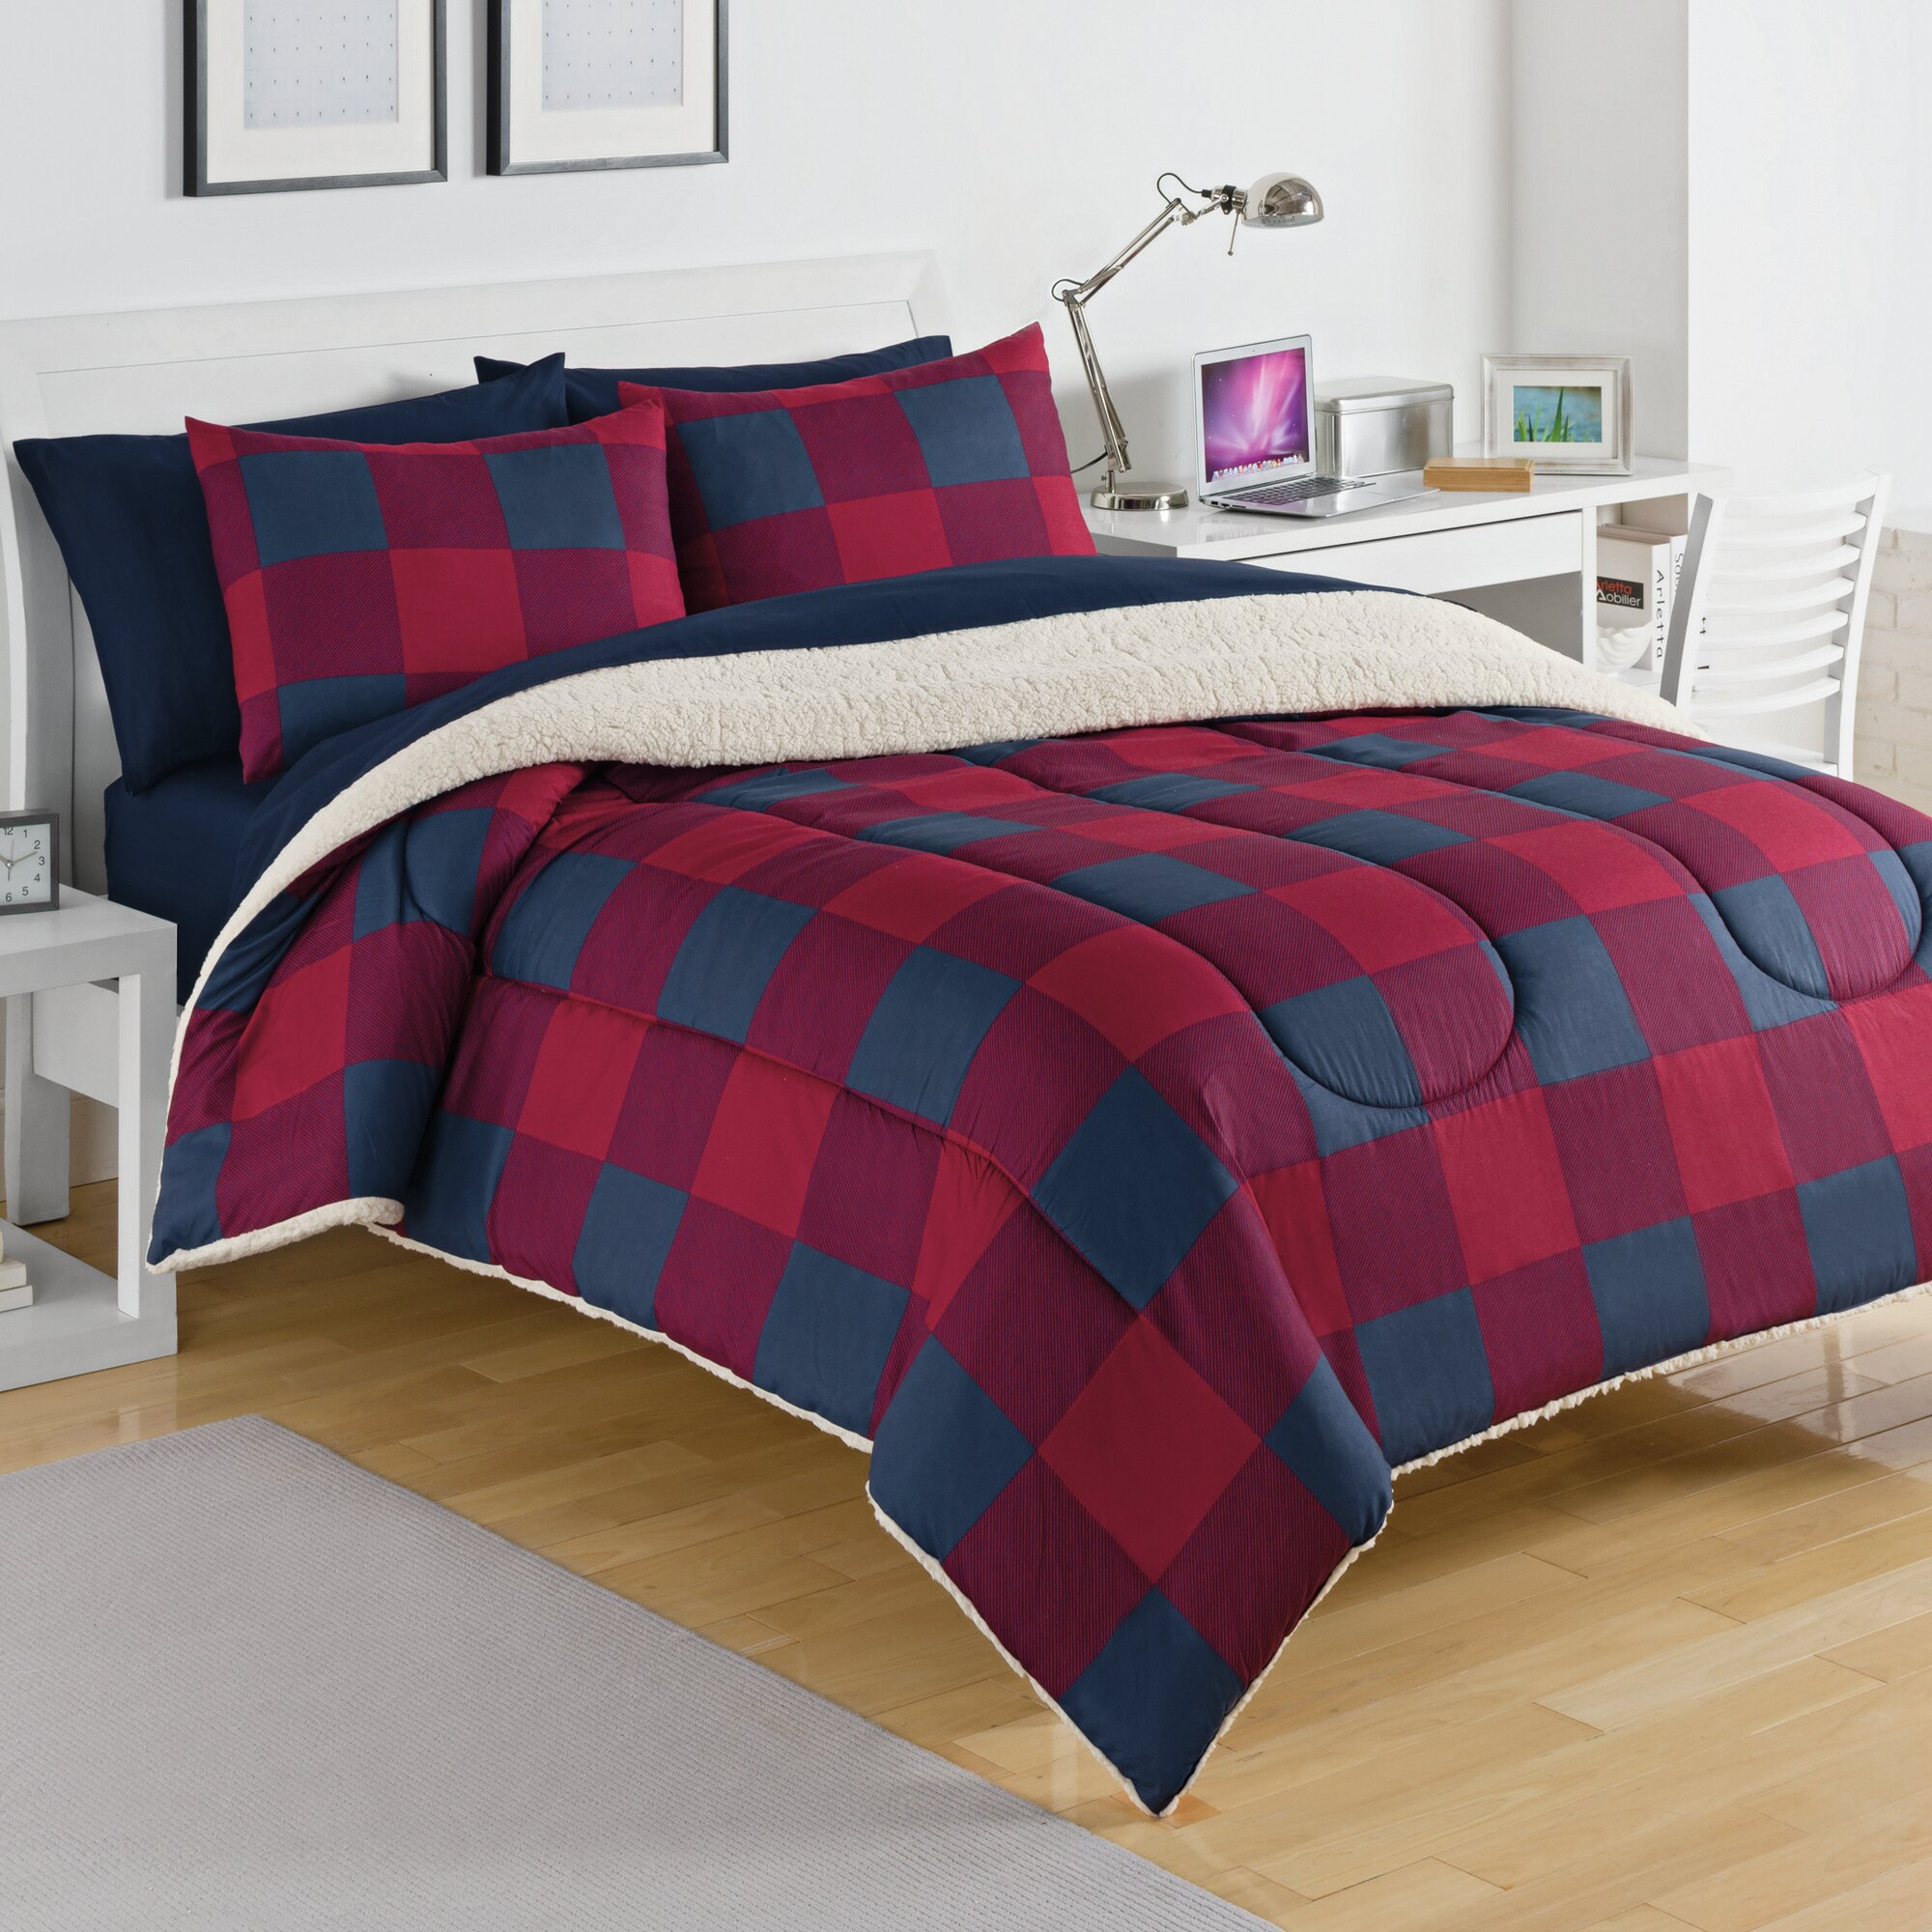 king comforter full plaid set buffalo bed plush check